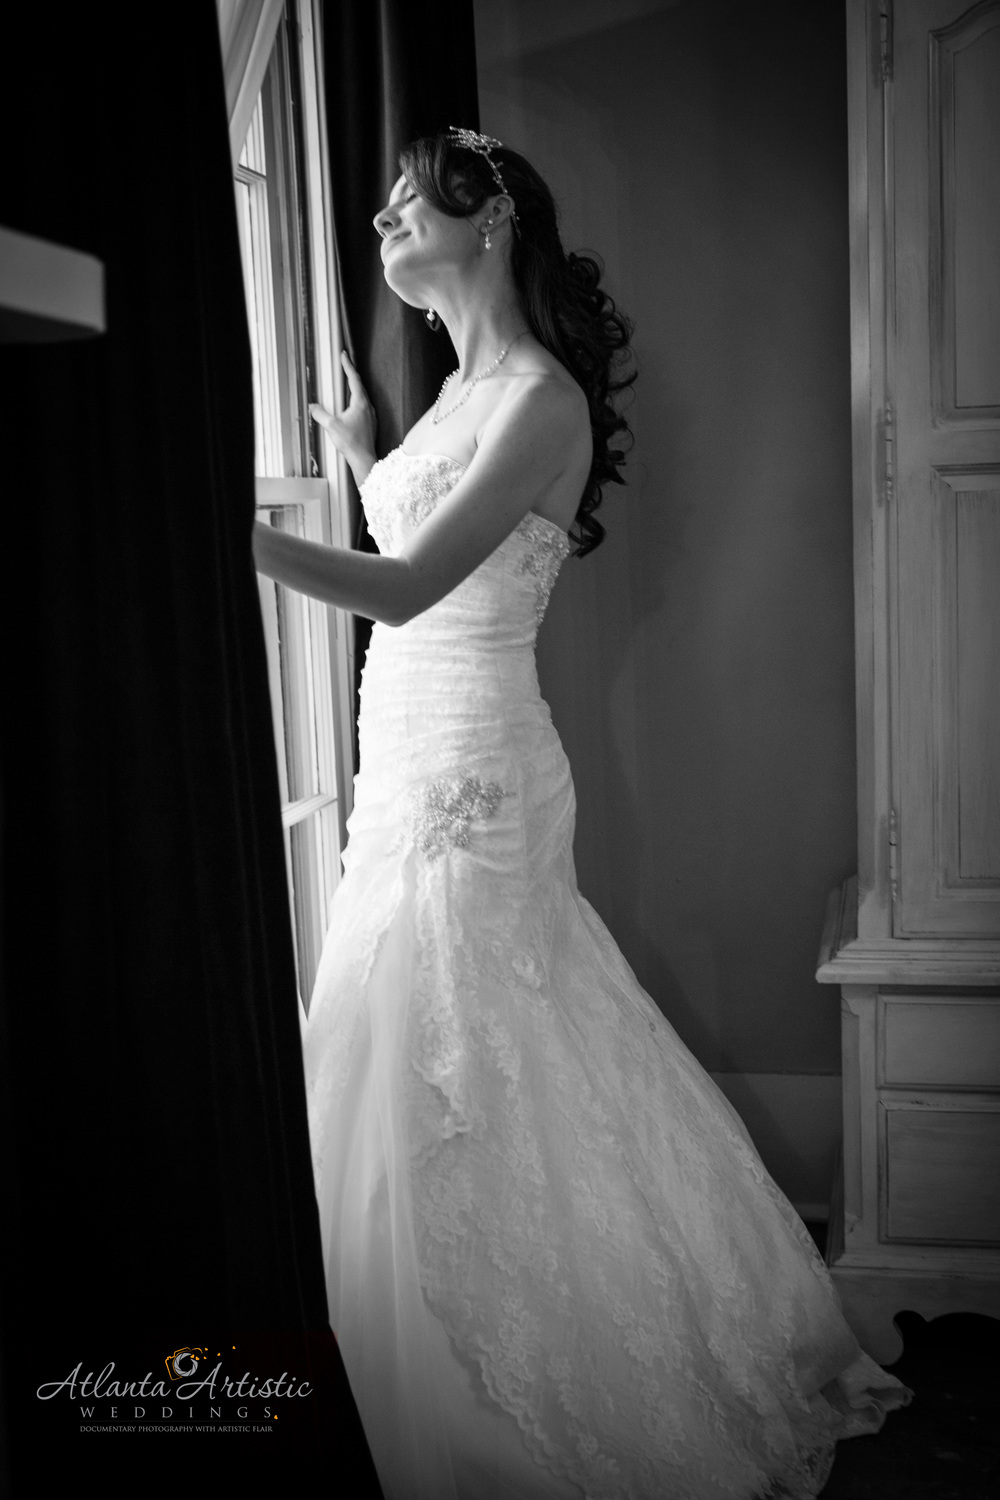 Classic Black and White Wedding Photography Using Natural Light